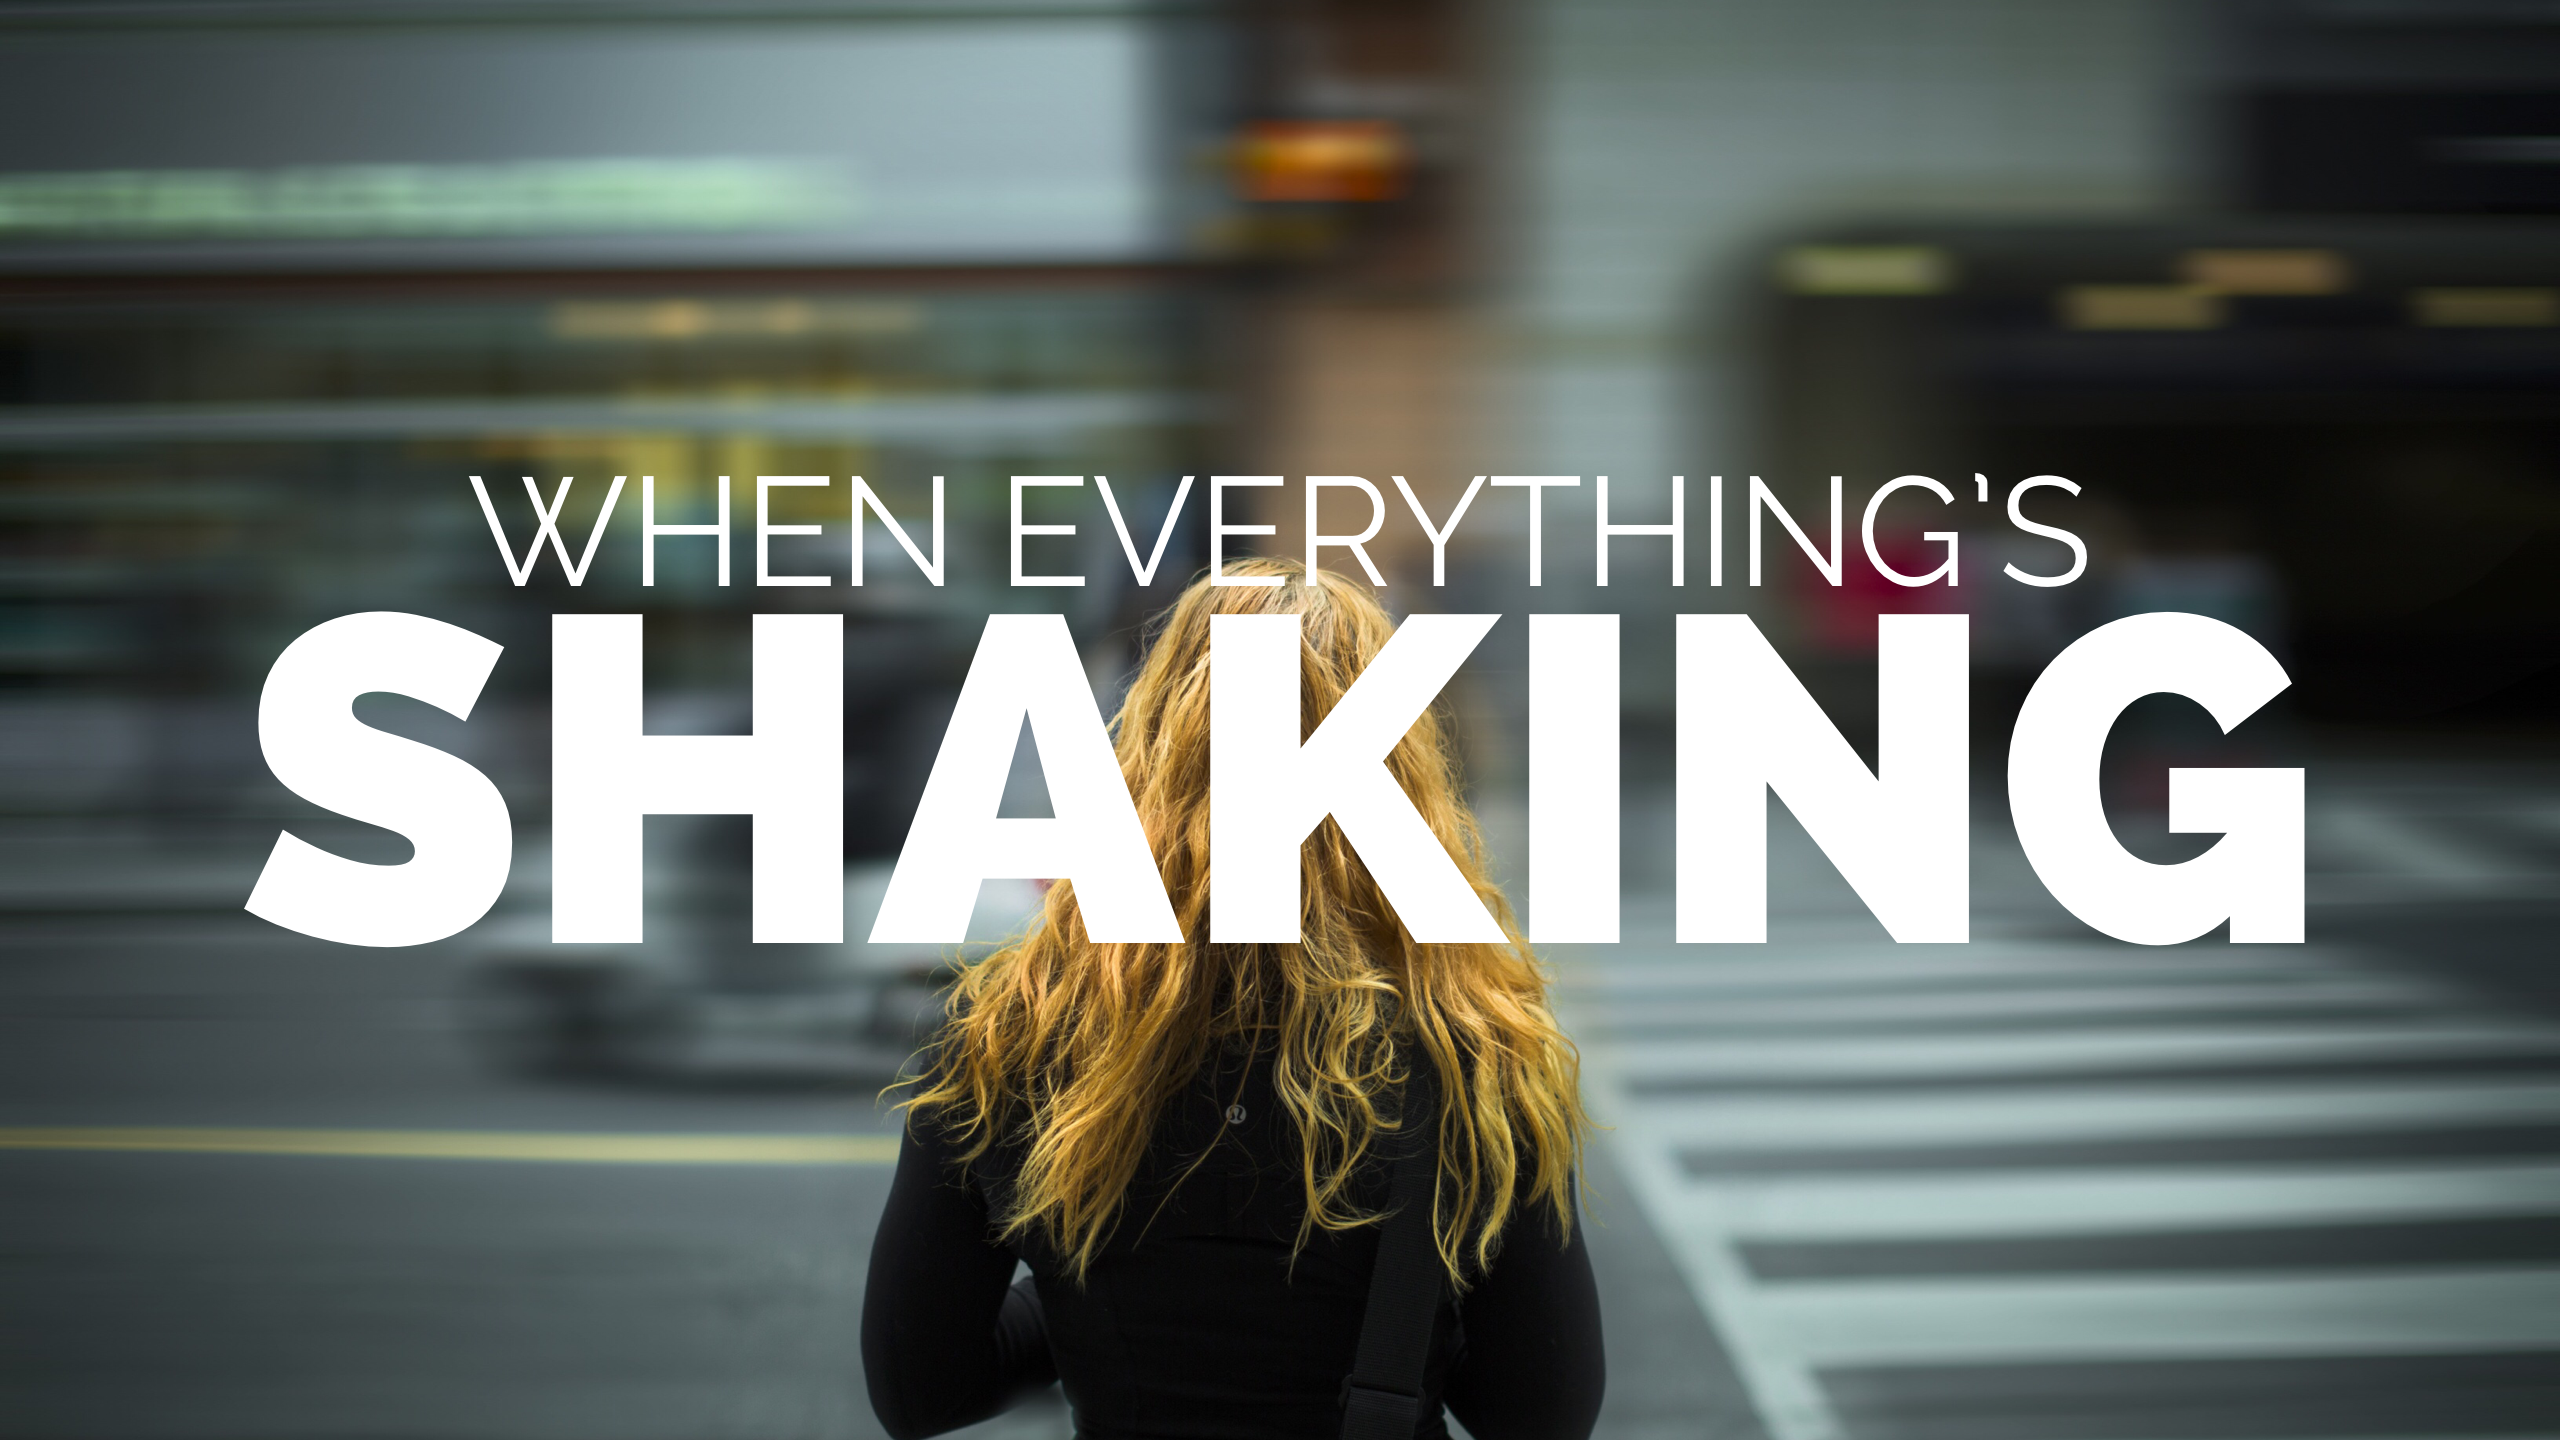 When Everything's Shaking